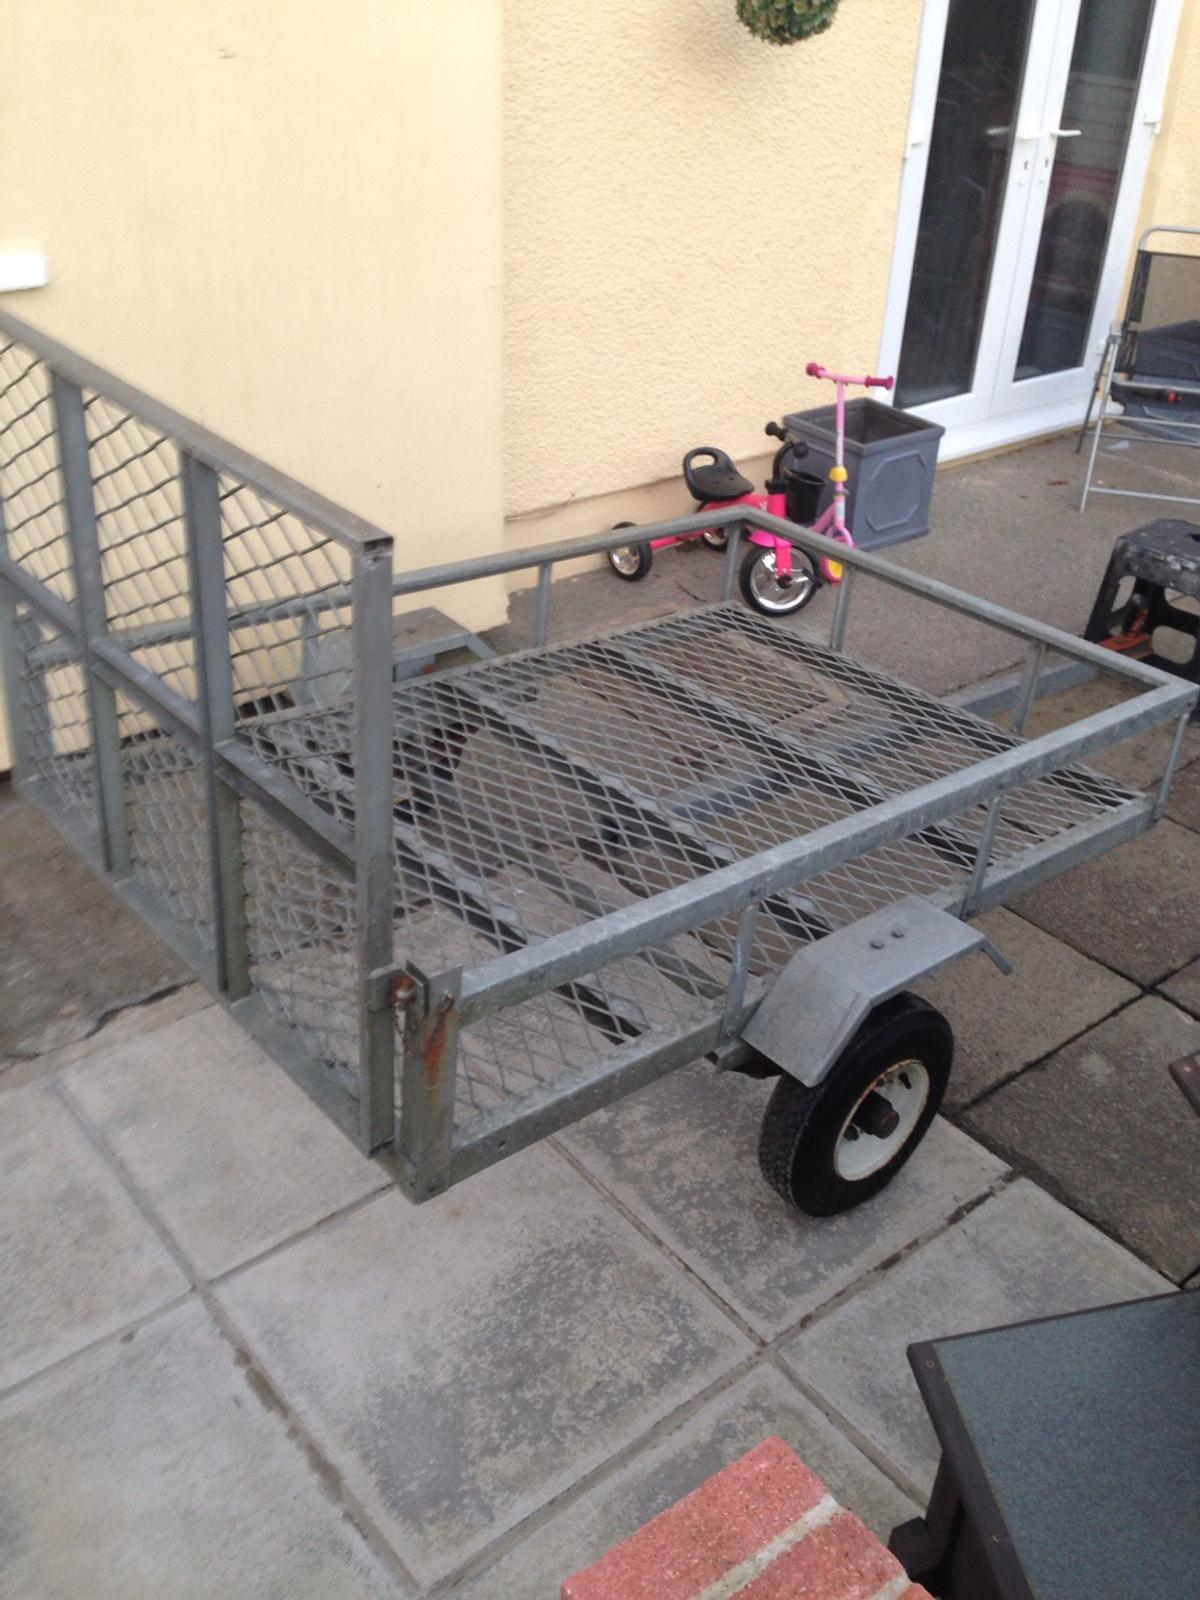 6x4 quad / ride on lawn mower trailer in NP22 Tredegar for £295 00